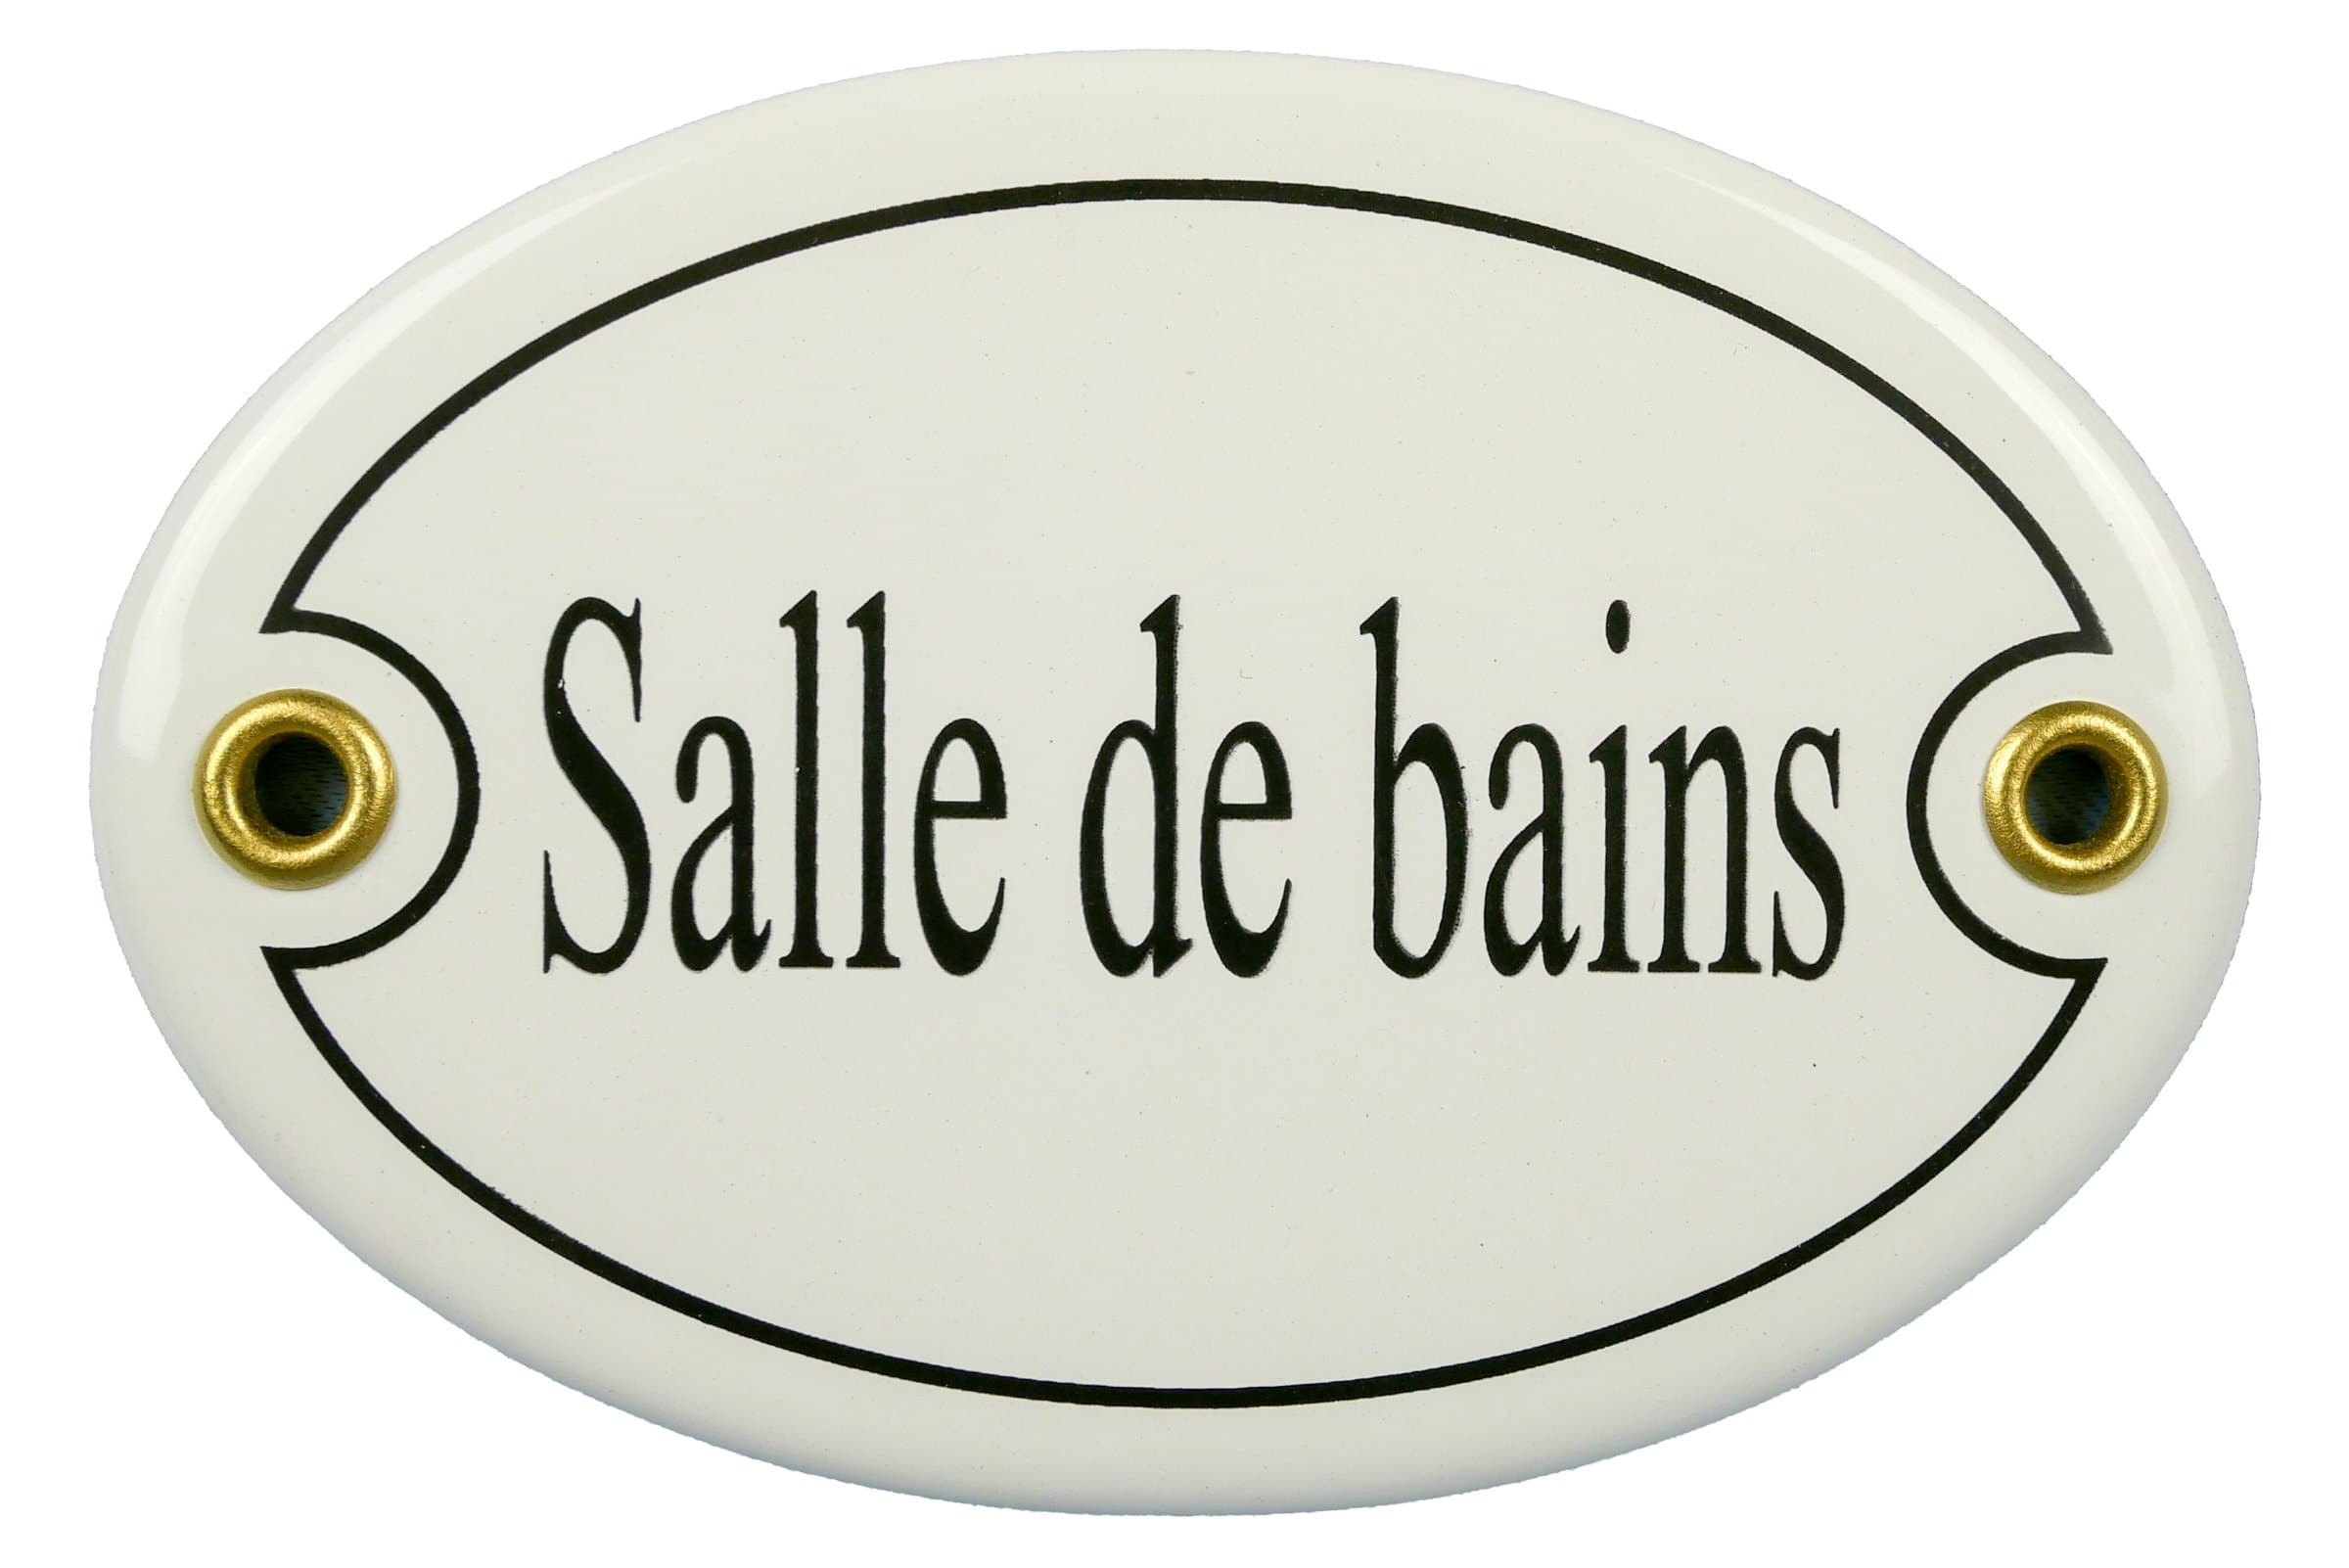 Insegna in email Salle de bains